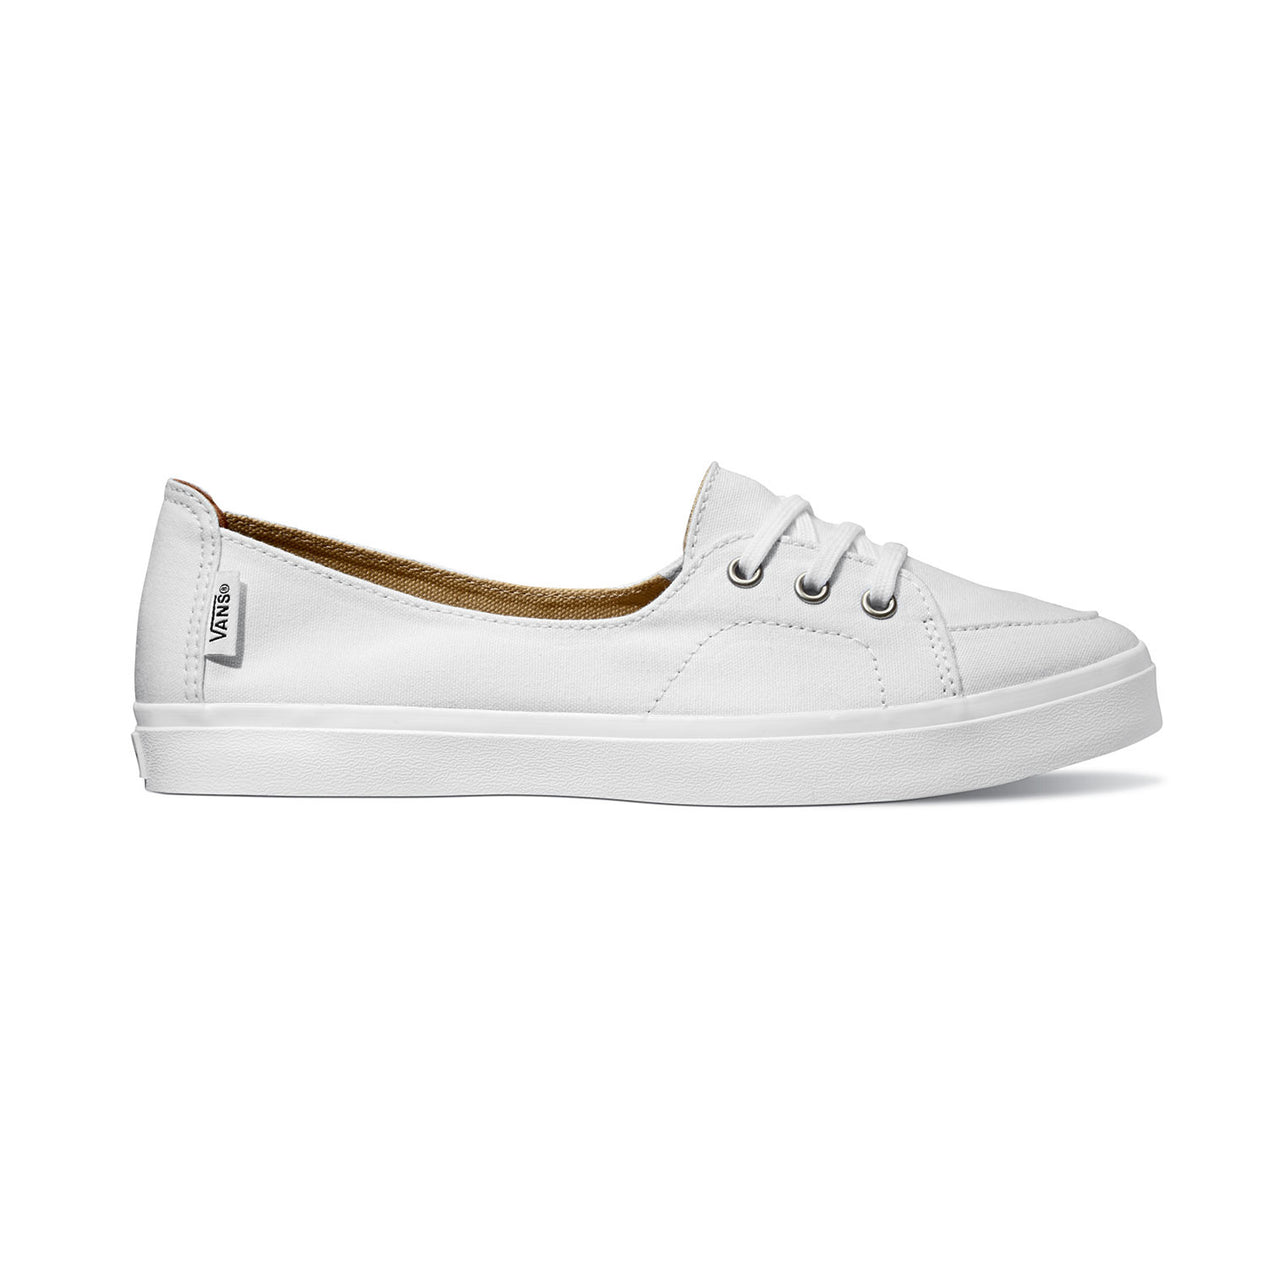 low cost pick up casual shoes Vans Women's Palisades SF